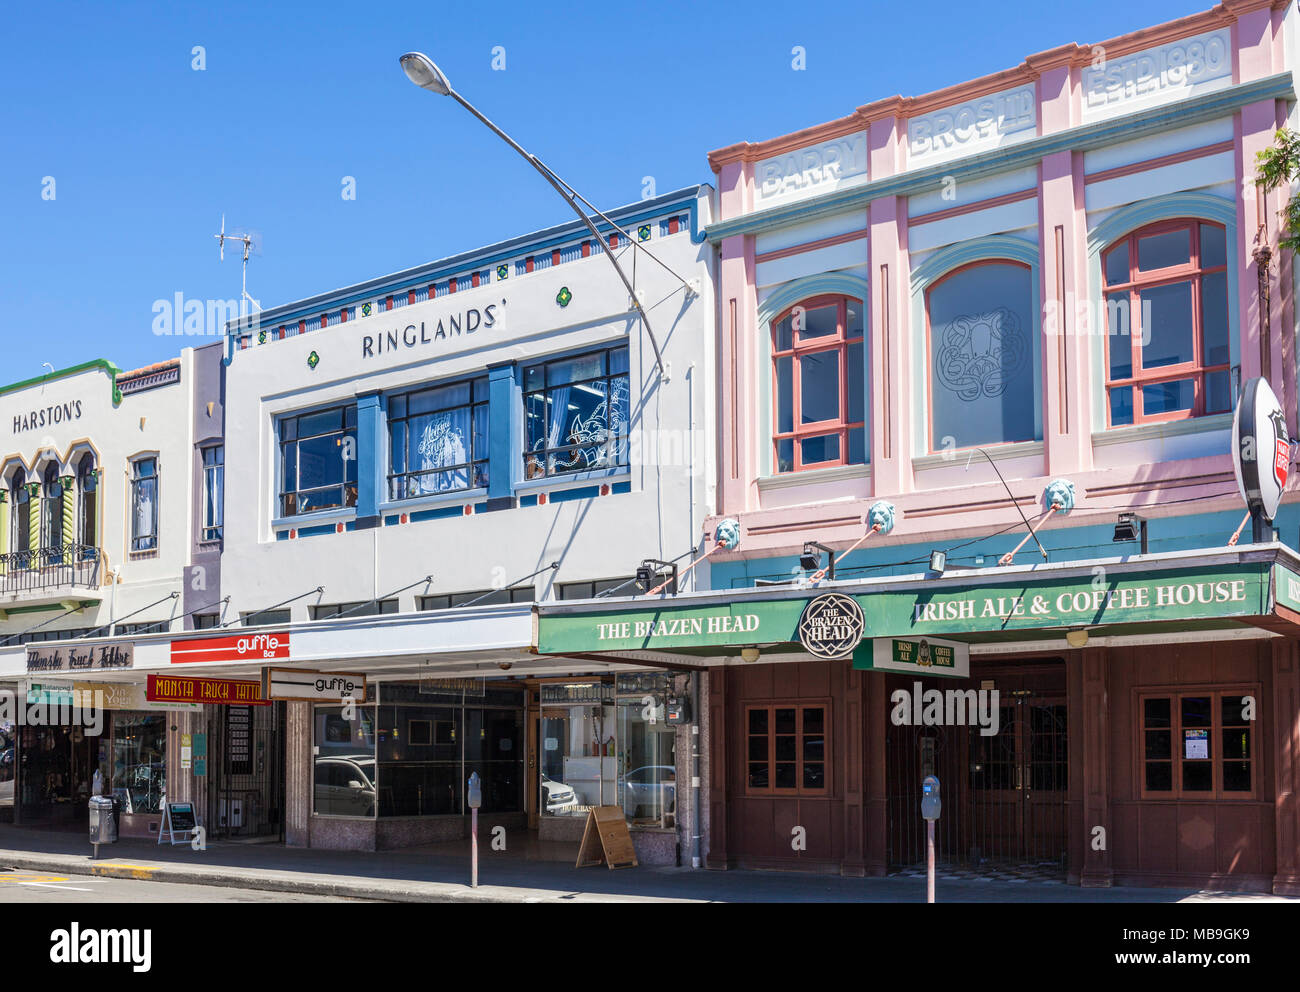 new zealand napier new zealand the art deco architecture of Napier town centre hastings street facades napier new zealand north island nz - Stock Image